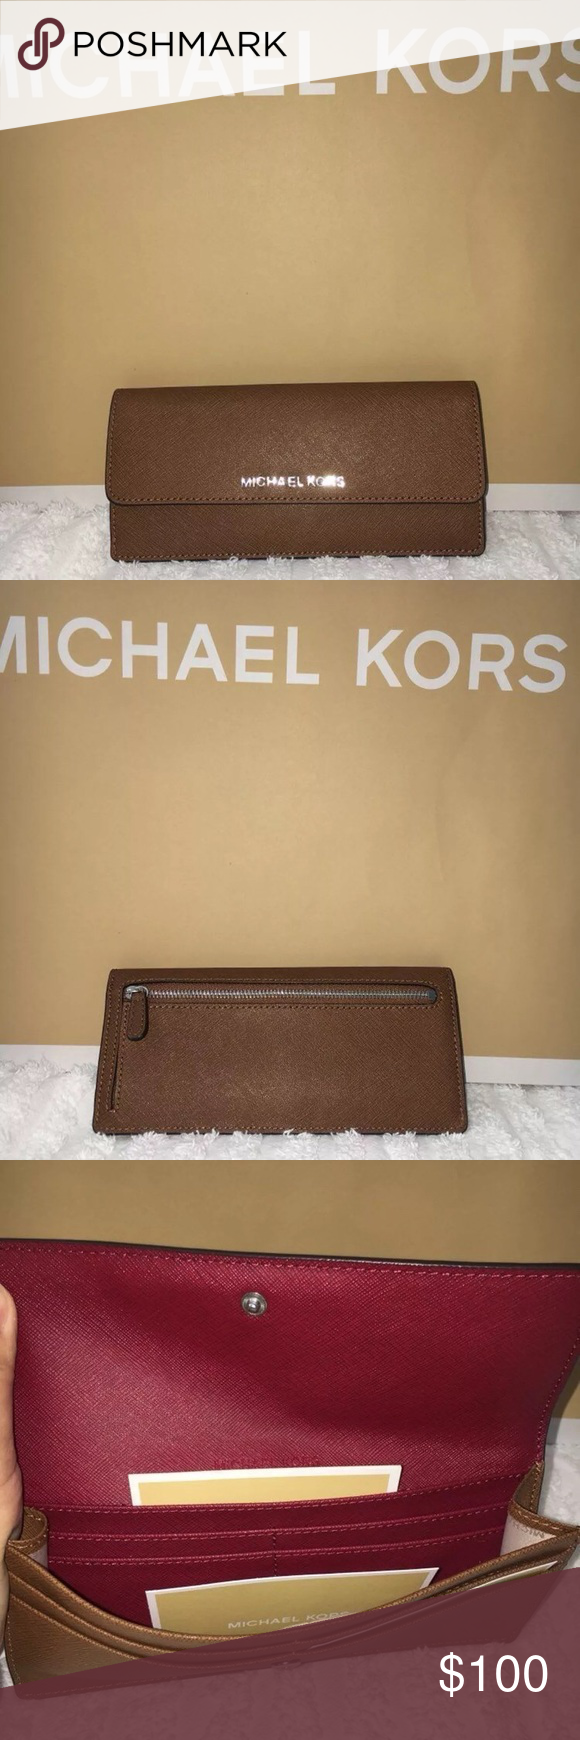 0dda3c36e4cd MK Jetset Travel Slim wallet Brand new never used Michael Kors Jet Set  Travel Slim Saffiano